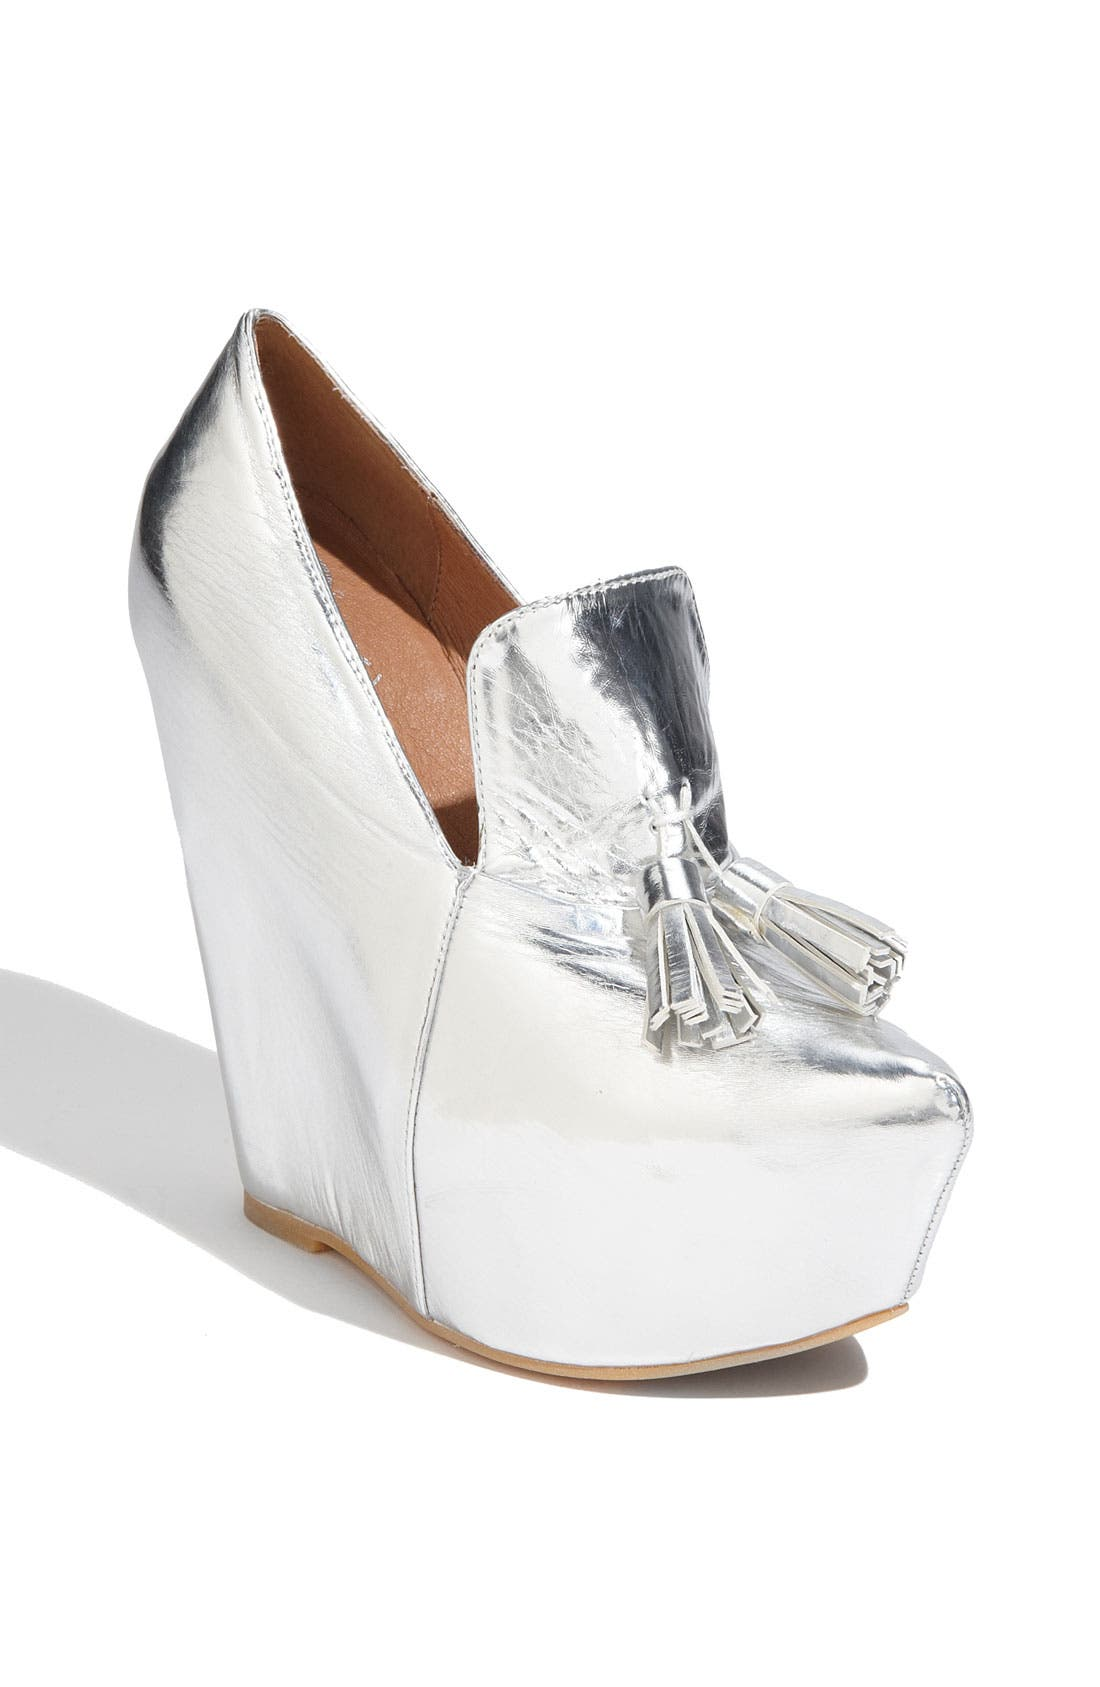 Main Image - Jeffrey Campbell 'Zealous' Pump